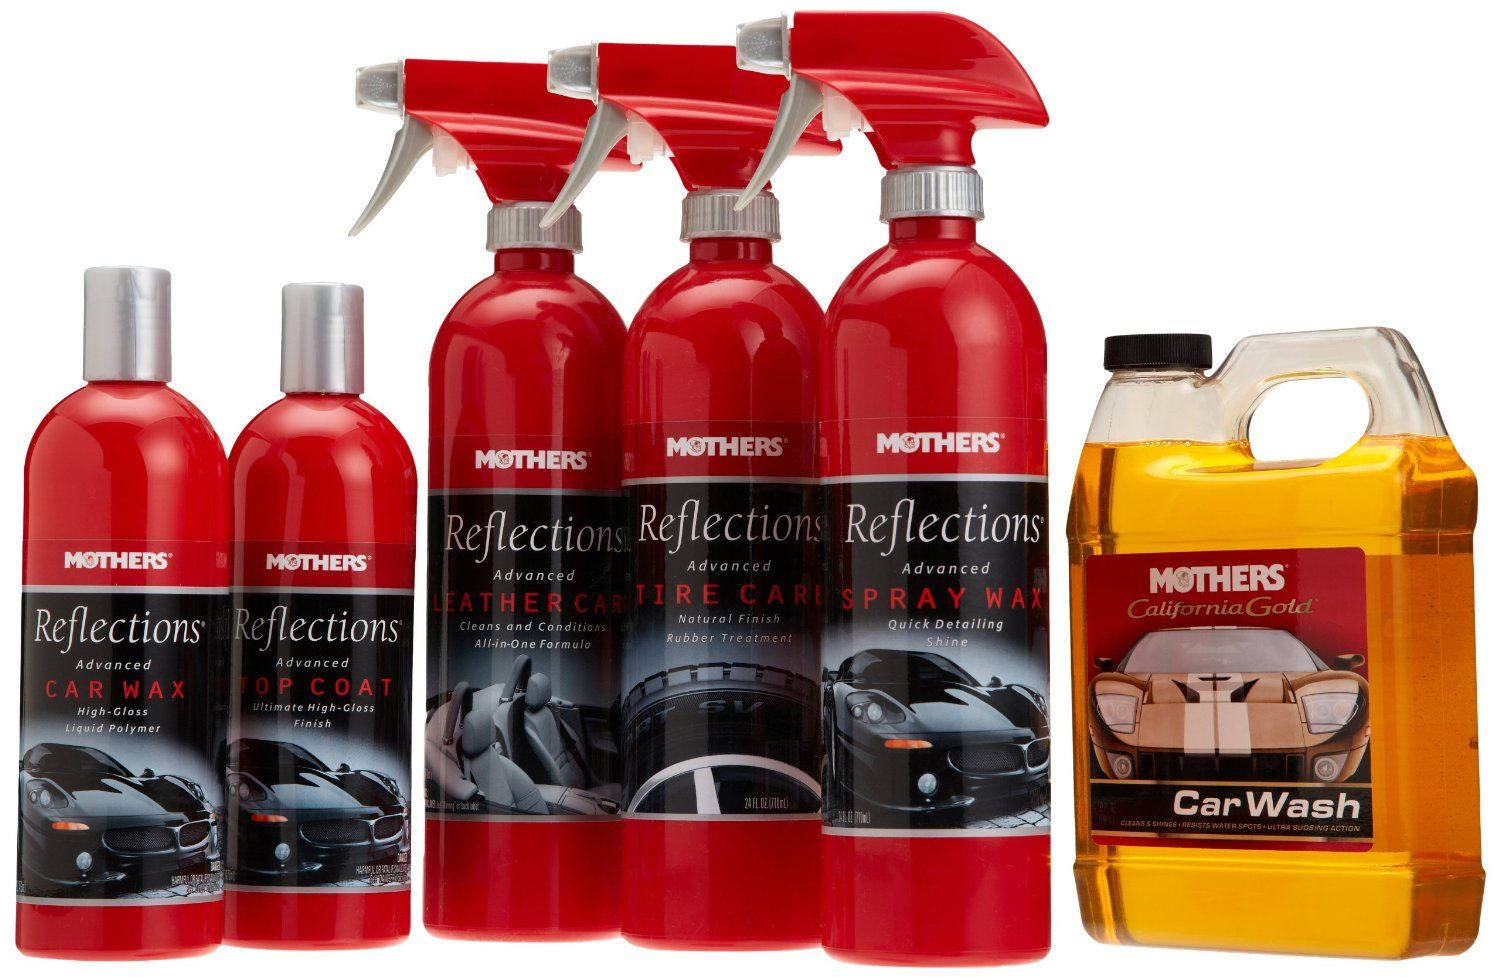 Mothers Reflections Car Care Kit Pulse Mall Car care